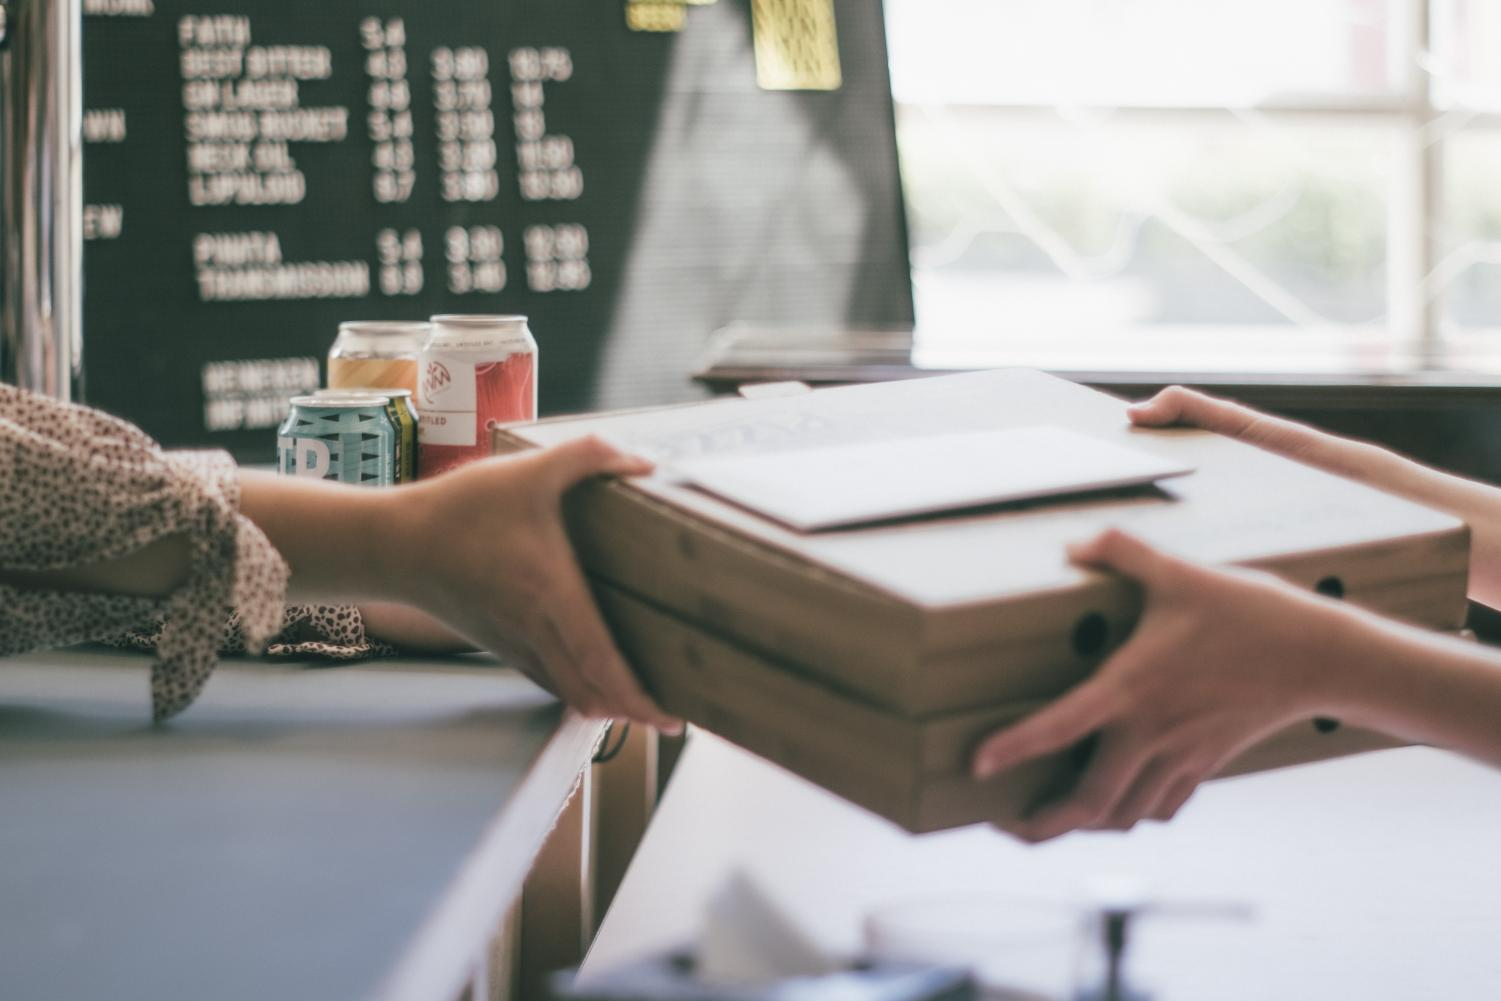 How are small businesses doing during Covid-19?